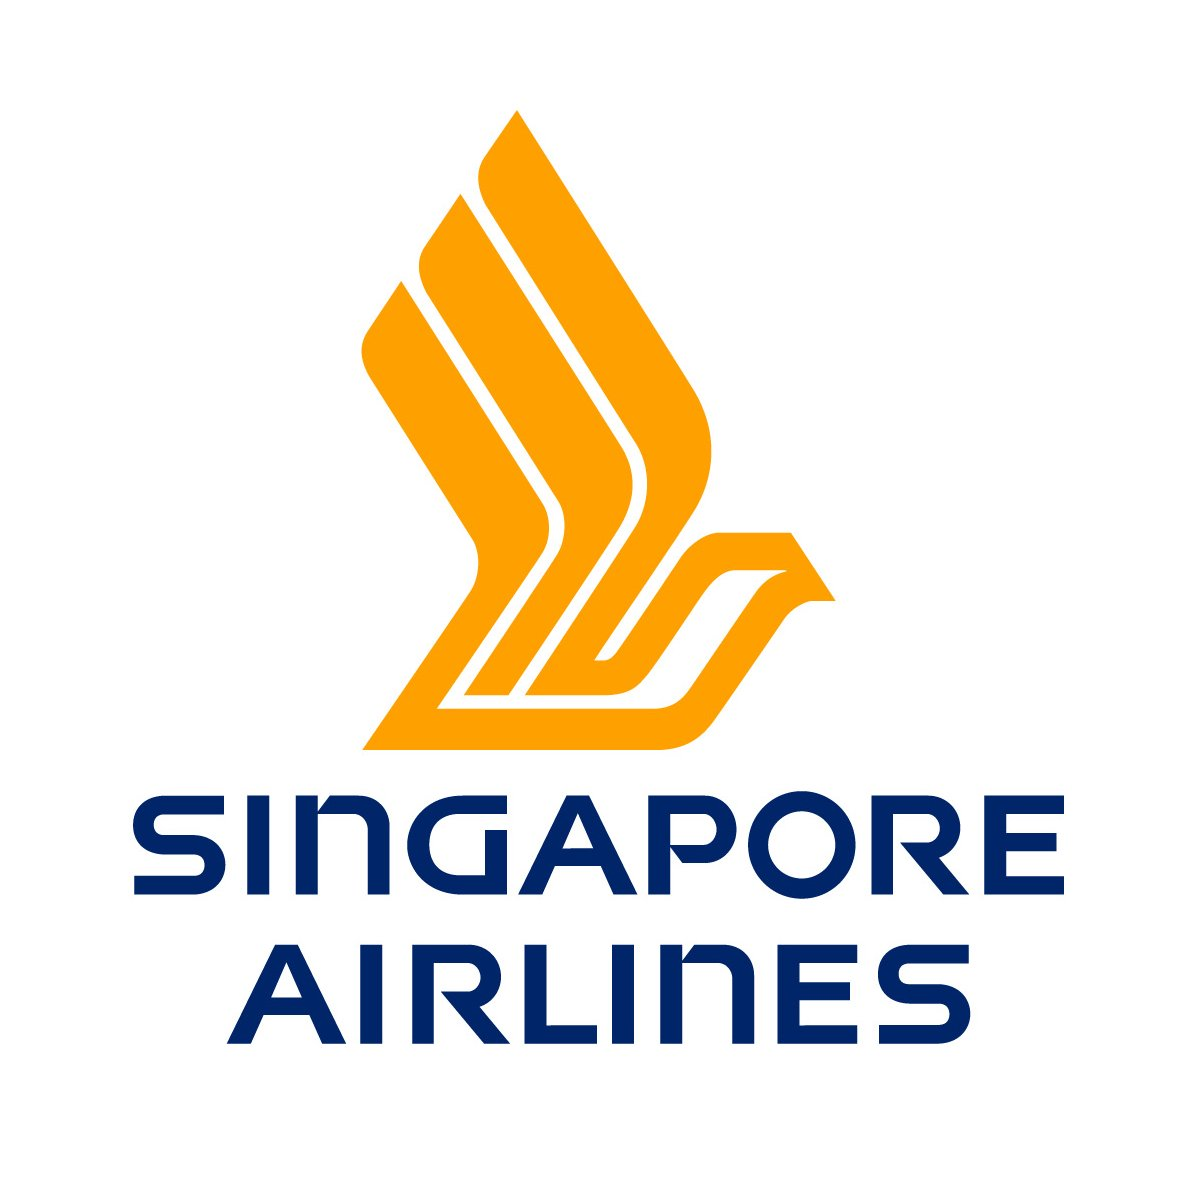 Fly non stop to Singapore and onwards to Houston 5 x a week starts 30/10/16